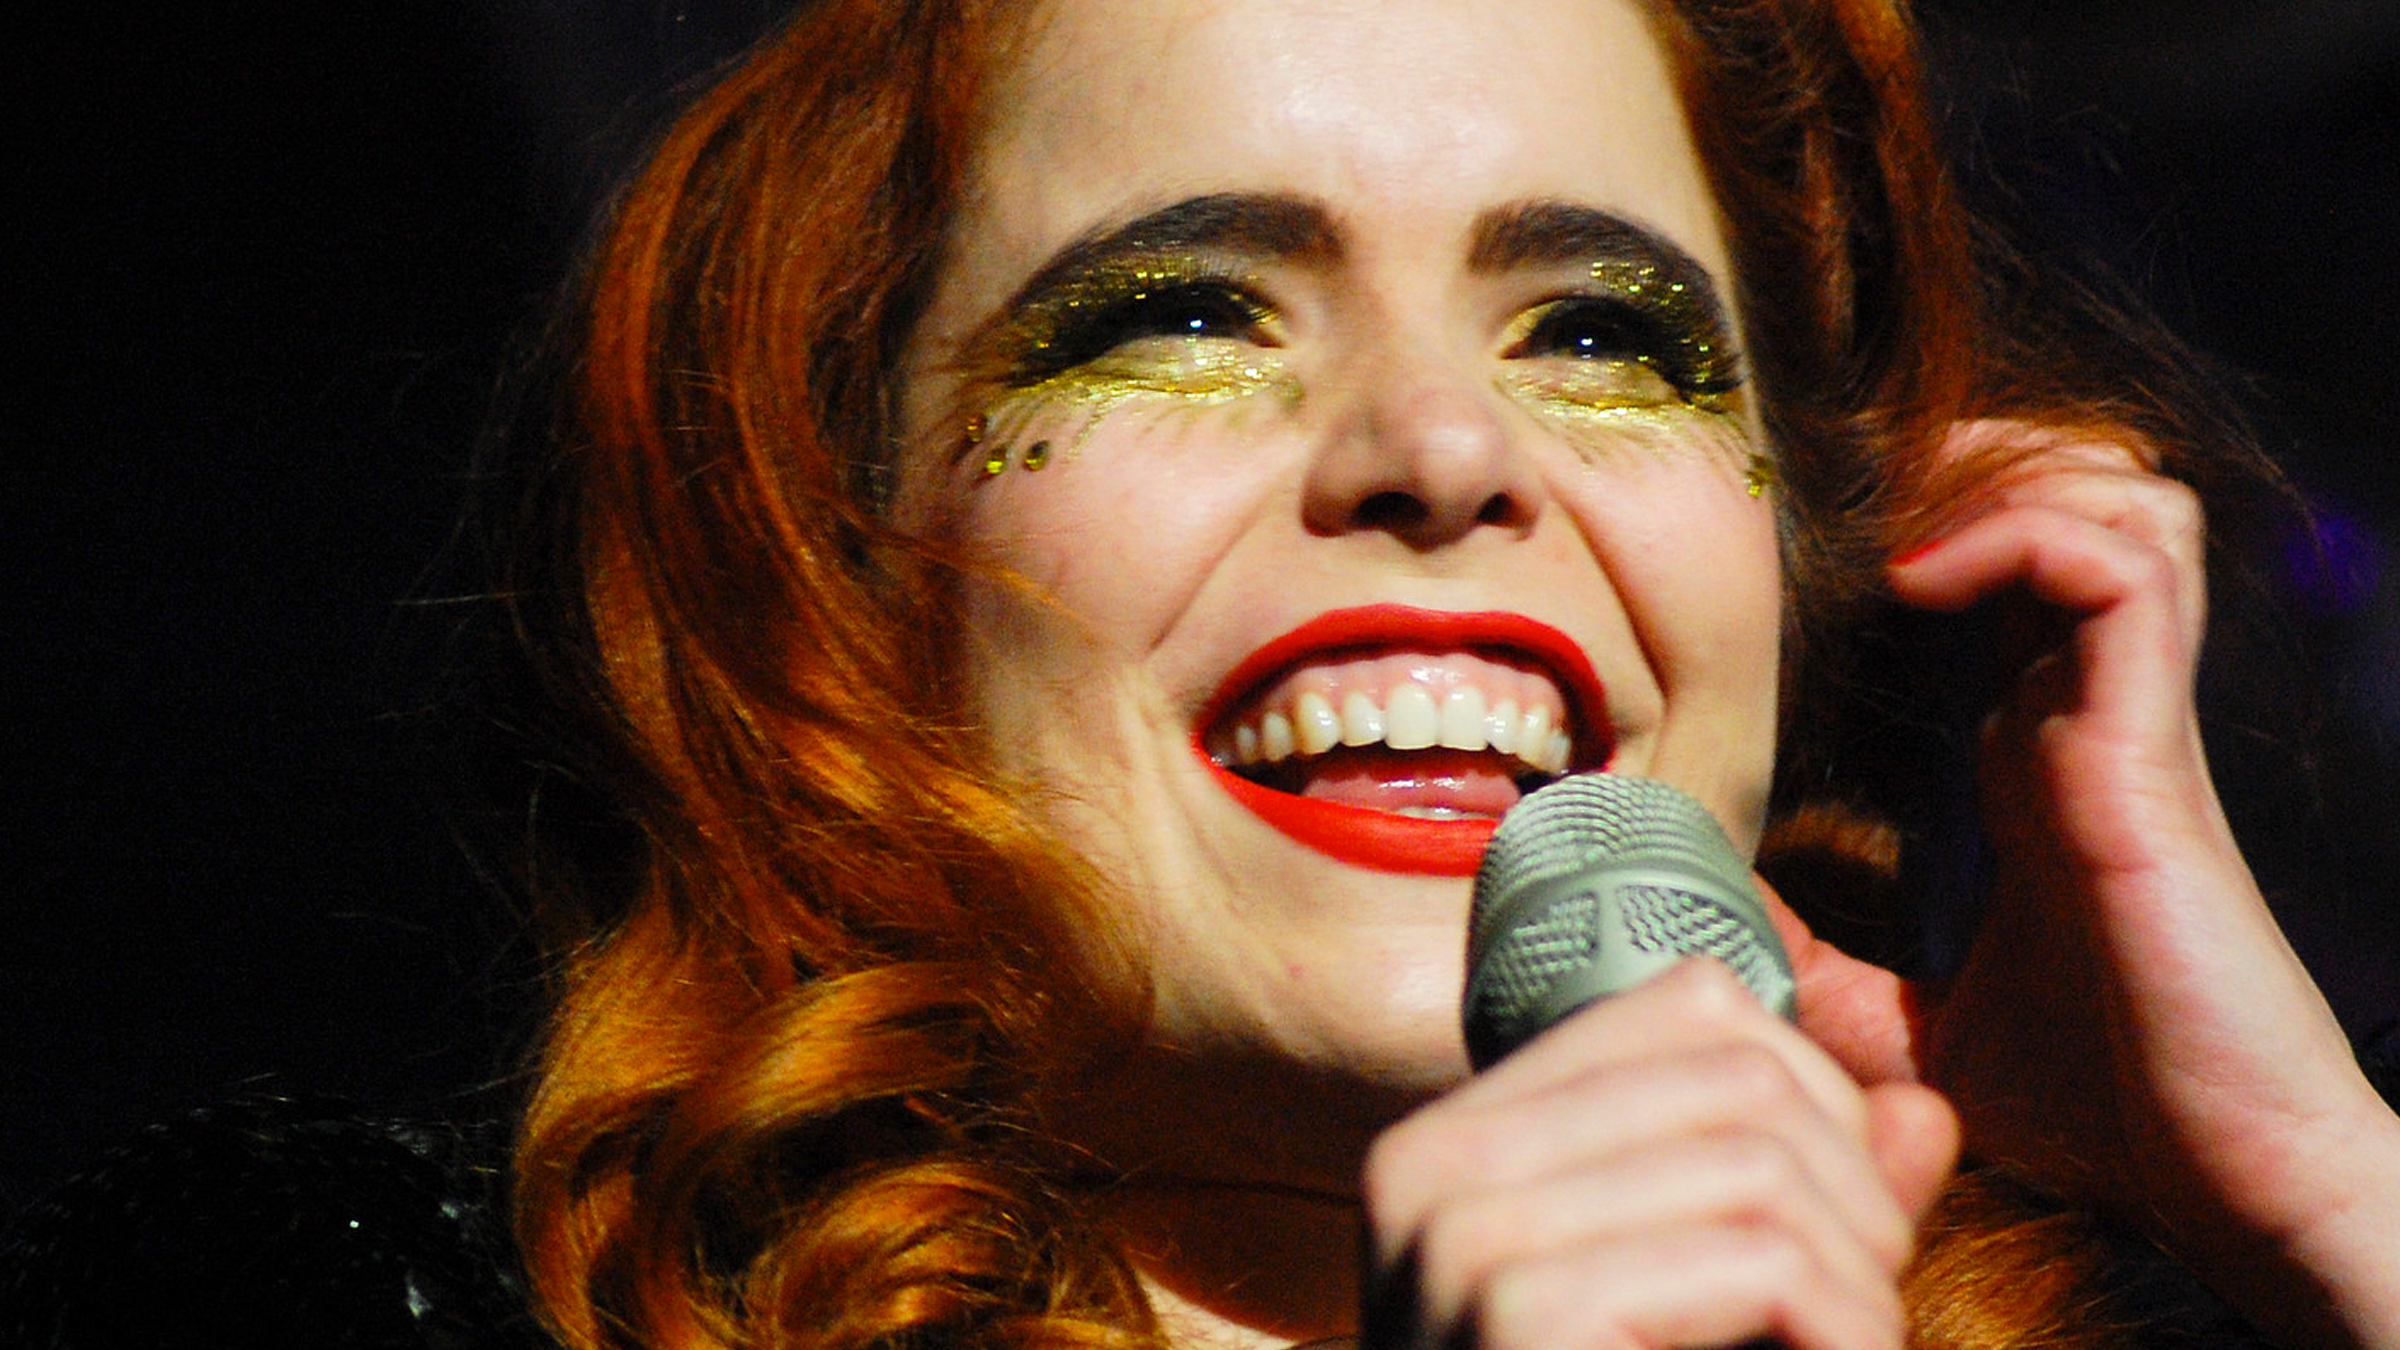 Teaser paloma faith